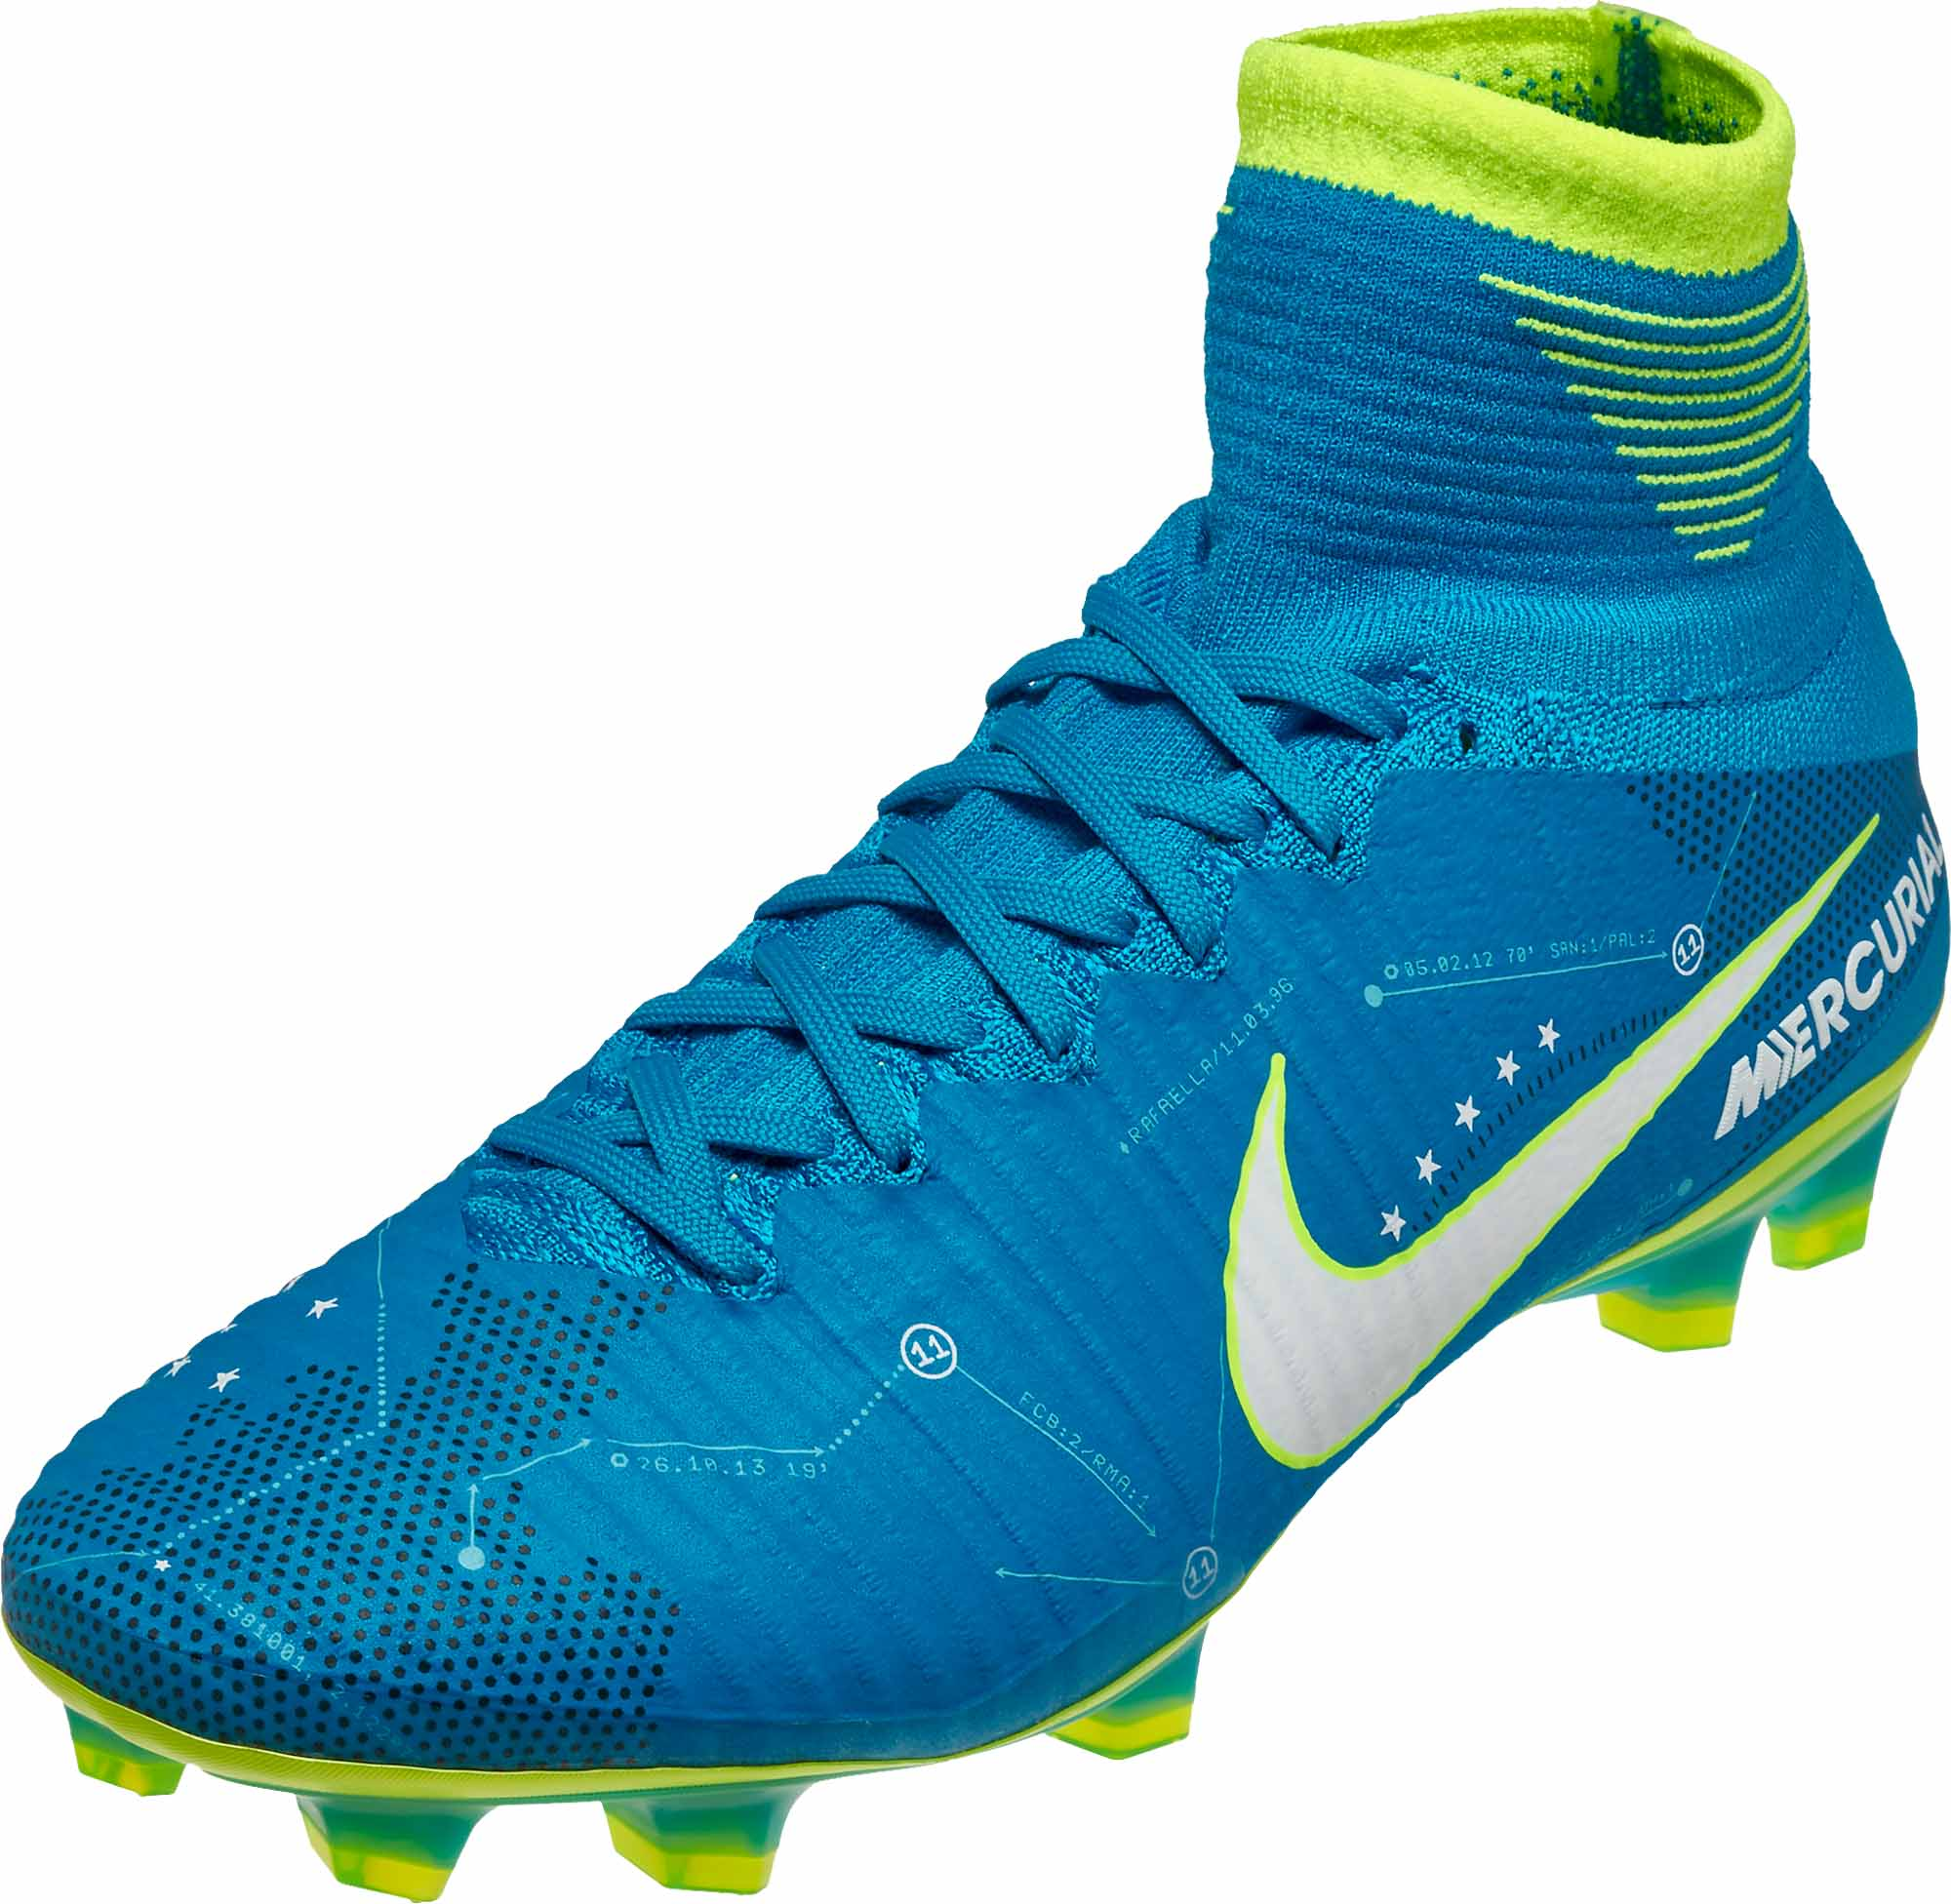 b27ac6571 Nike Mercurial Superfly V SX FG – Neymar – Blue Orbit White